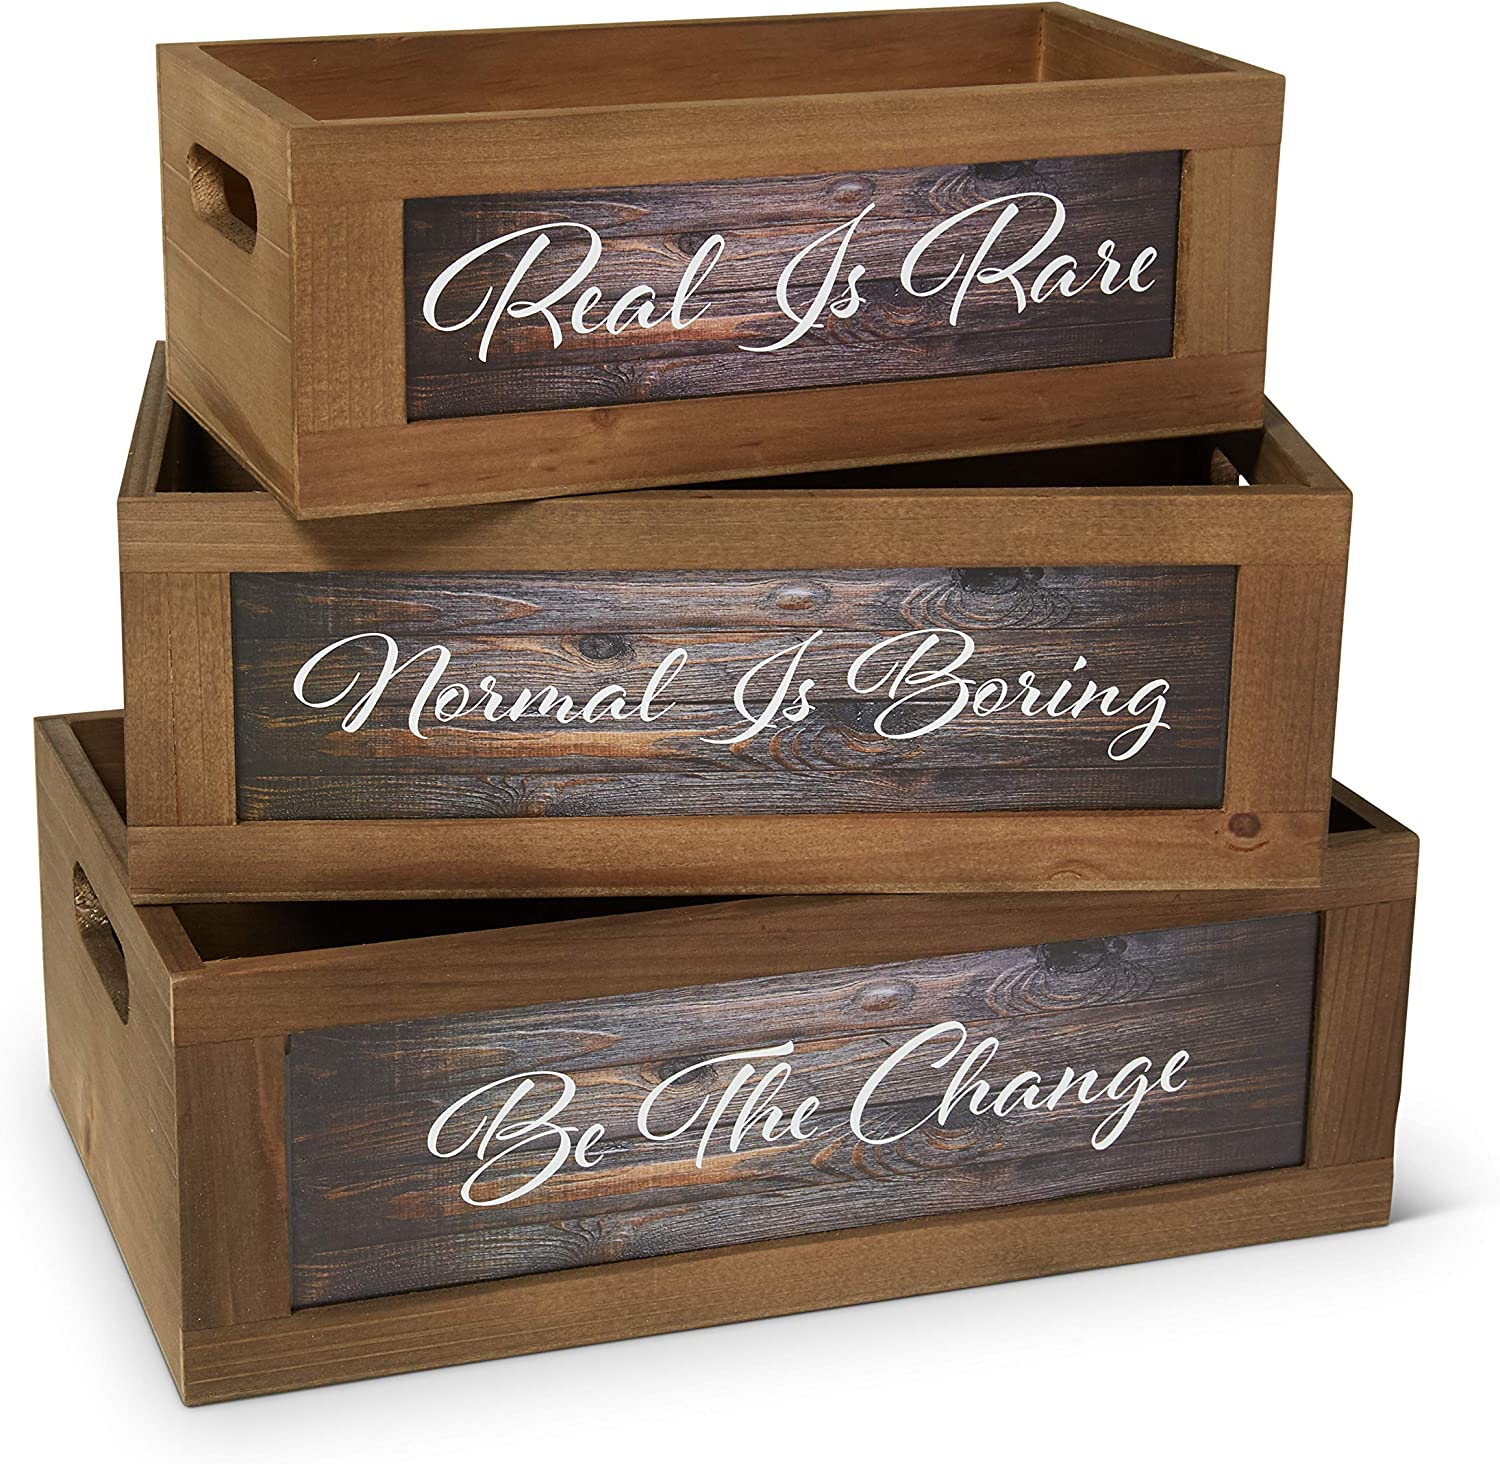 GoinFam Wooden Farmhouse Crates - Set of 3 - Inspirational Quotes - Farmhouse Decor - Dream Pantry - Decorative Storage Bins - Country Vintage - Rustic Organization - 3 Sizes (Small, Medium, Large)